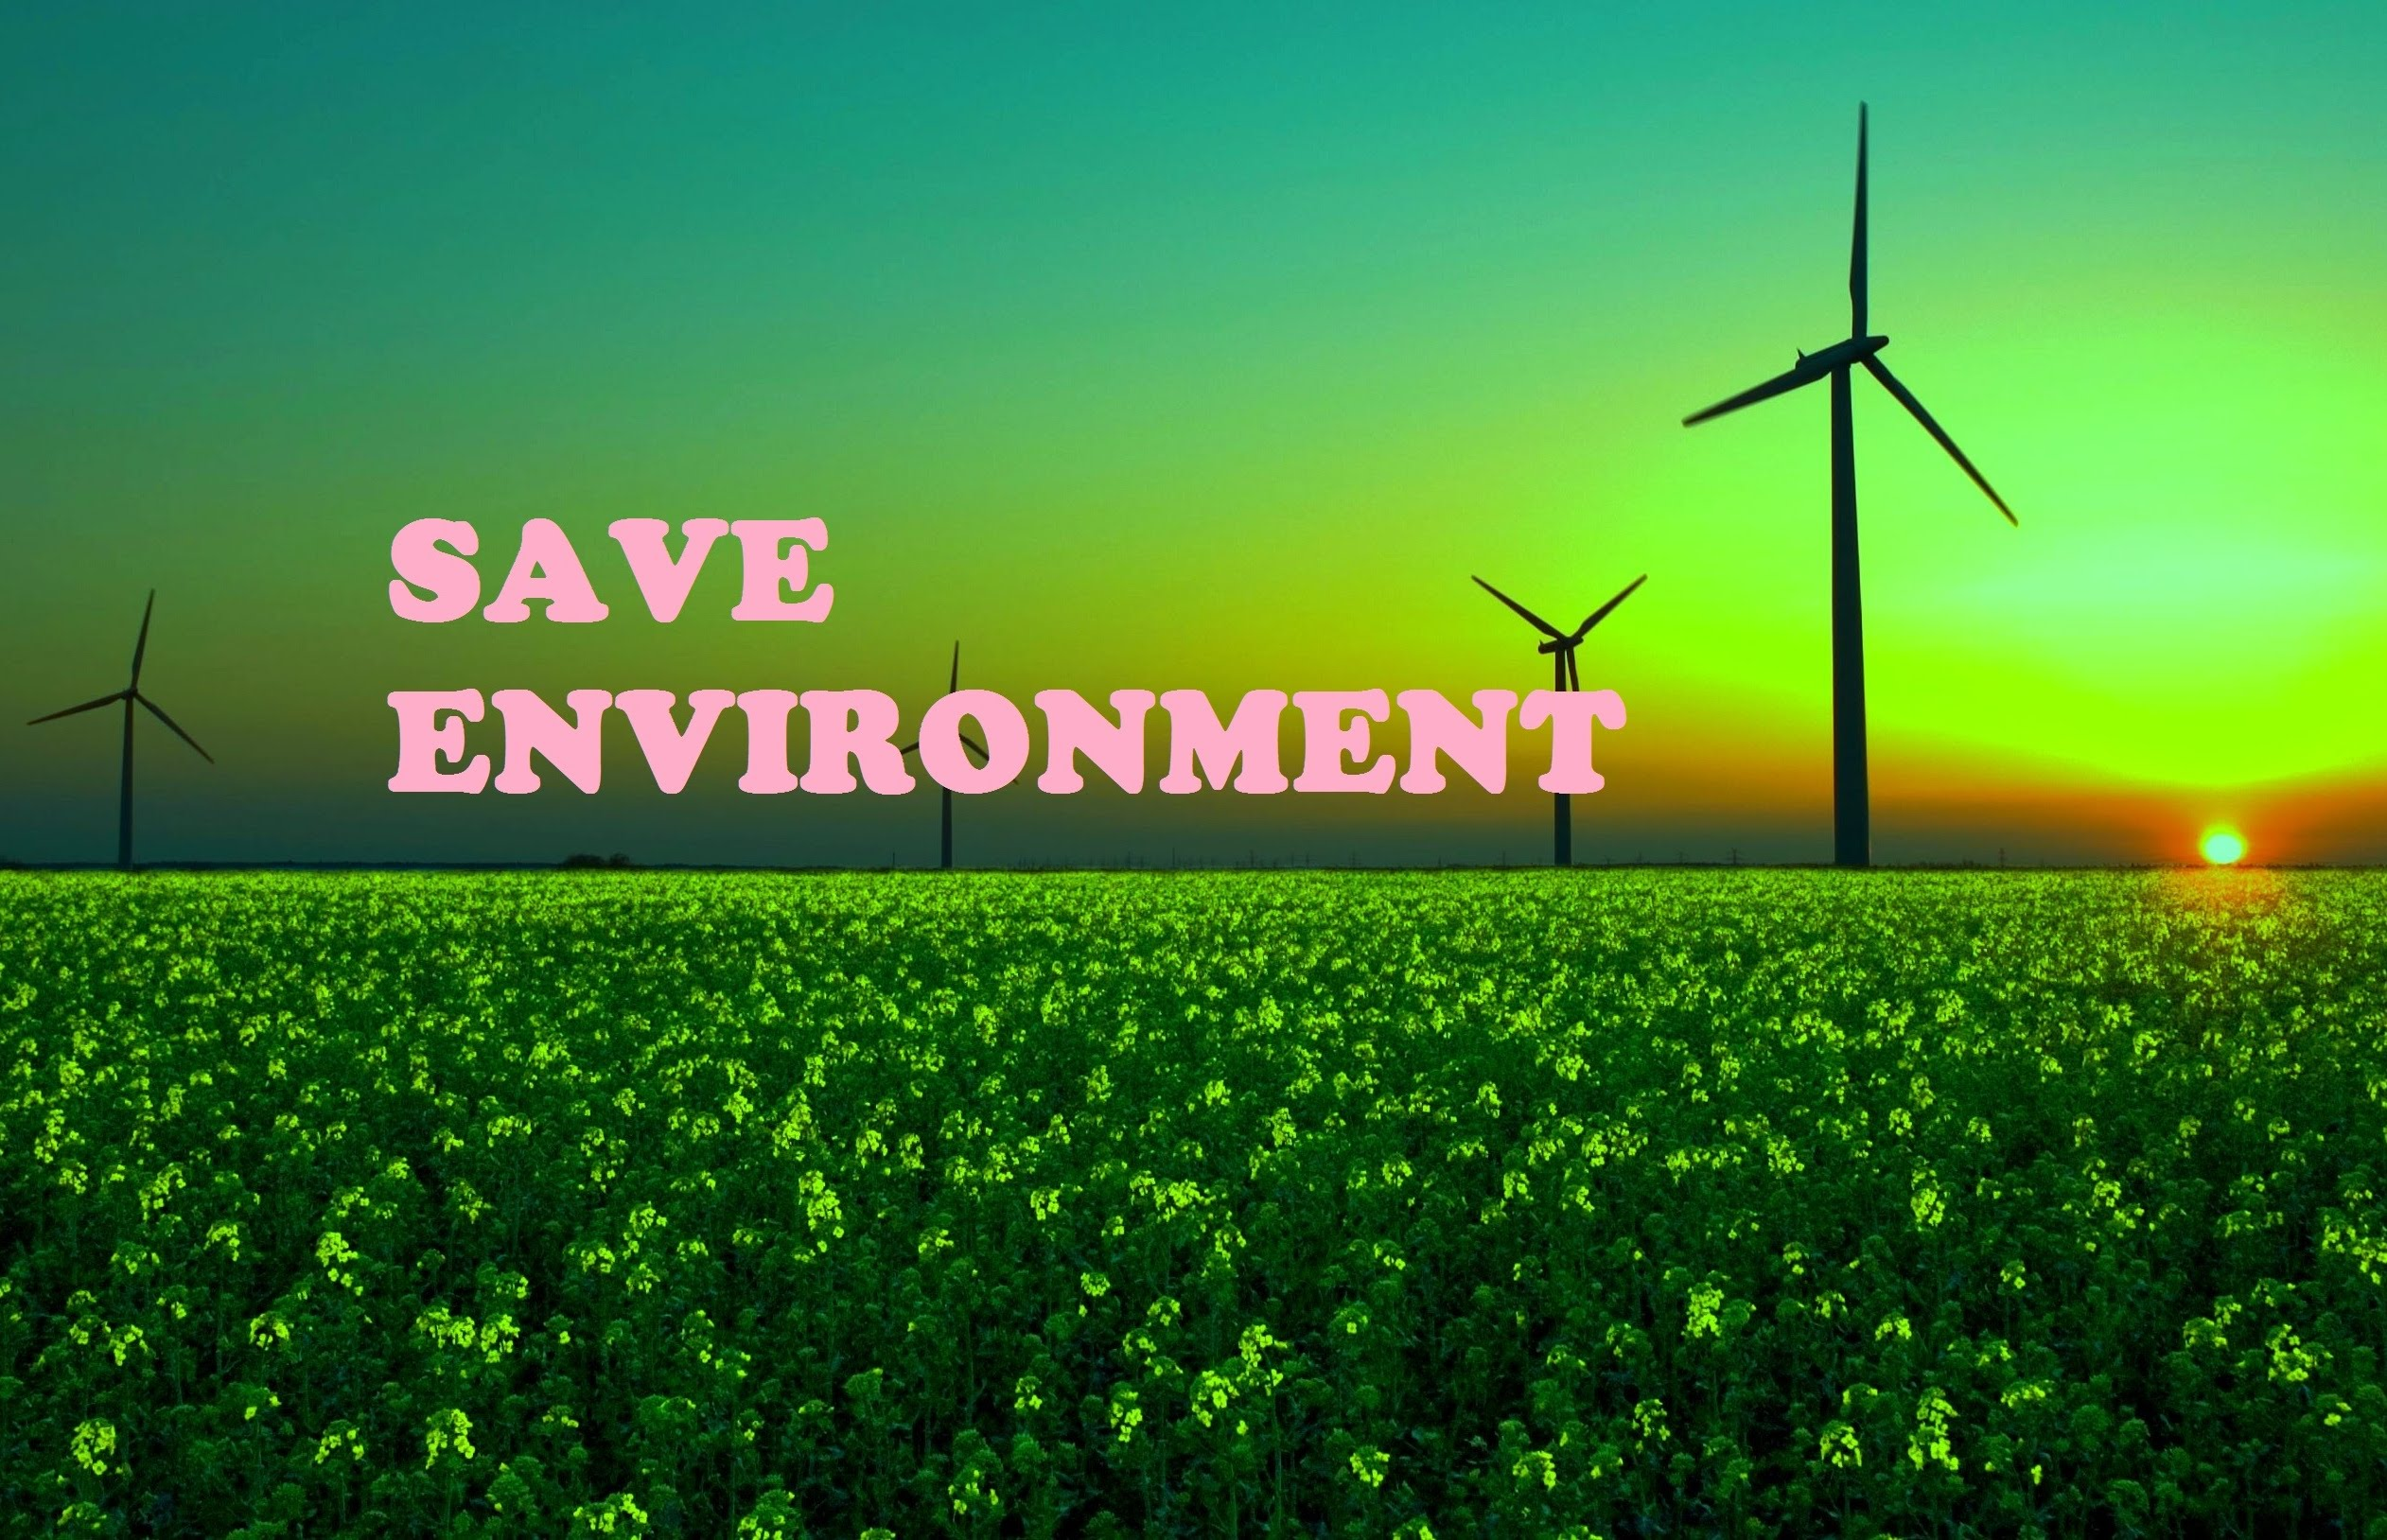 protecting the environment campaign essay Protecting the environment news find breaking news, commentary, and archival information about protecting the environment from the tribunedigital-orlandosentinel.